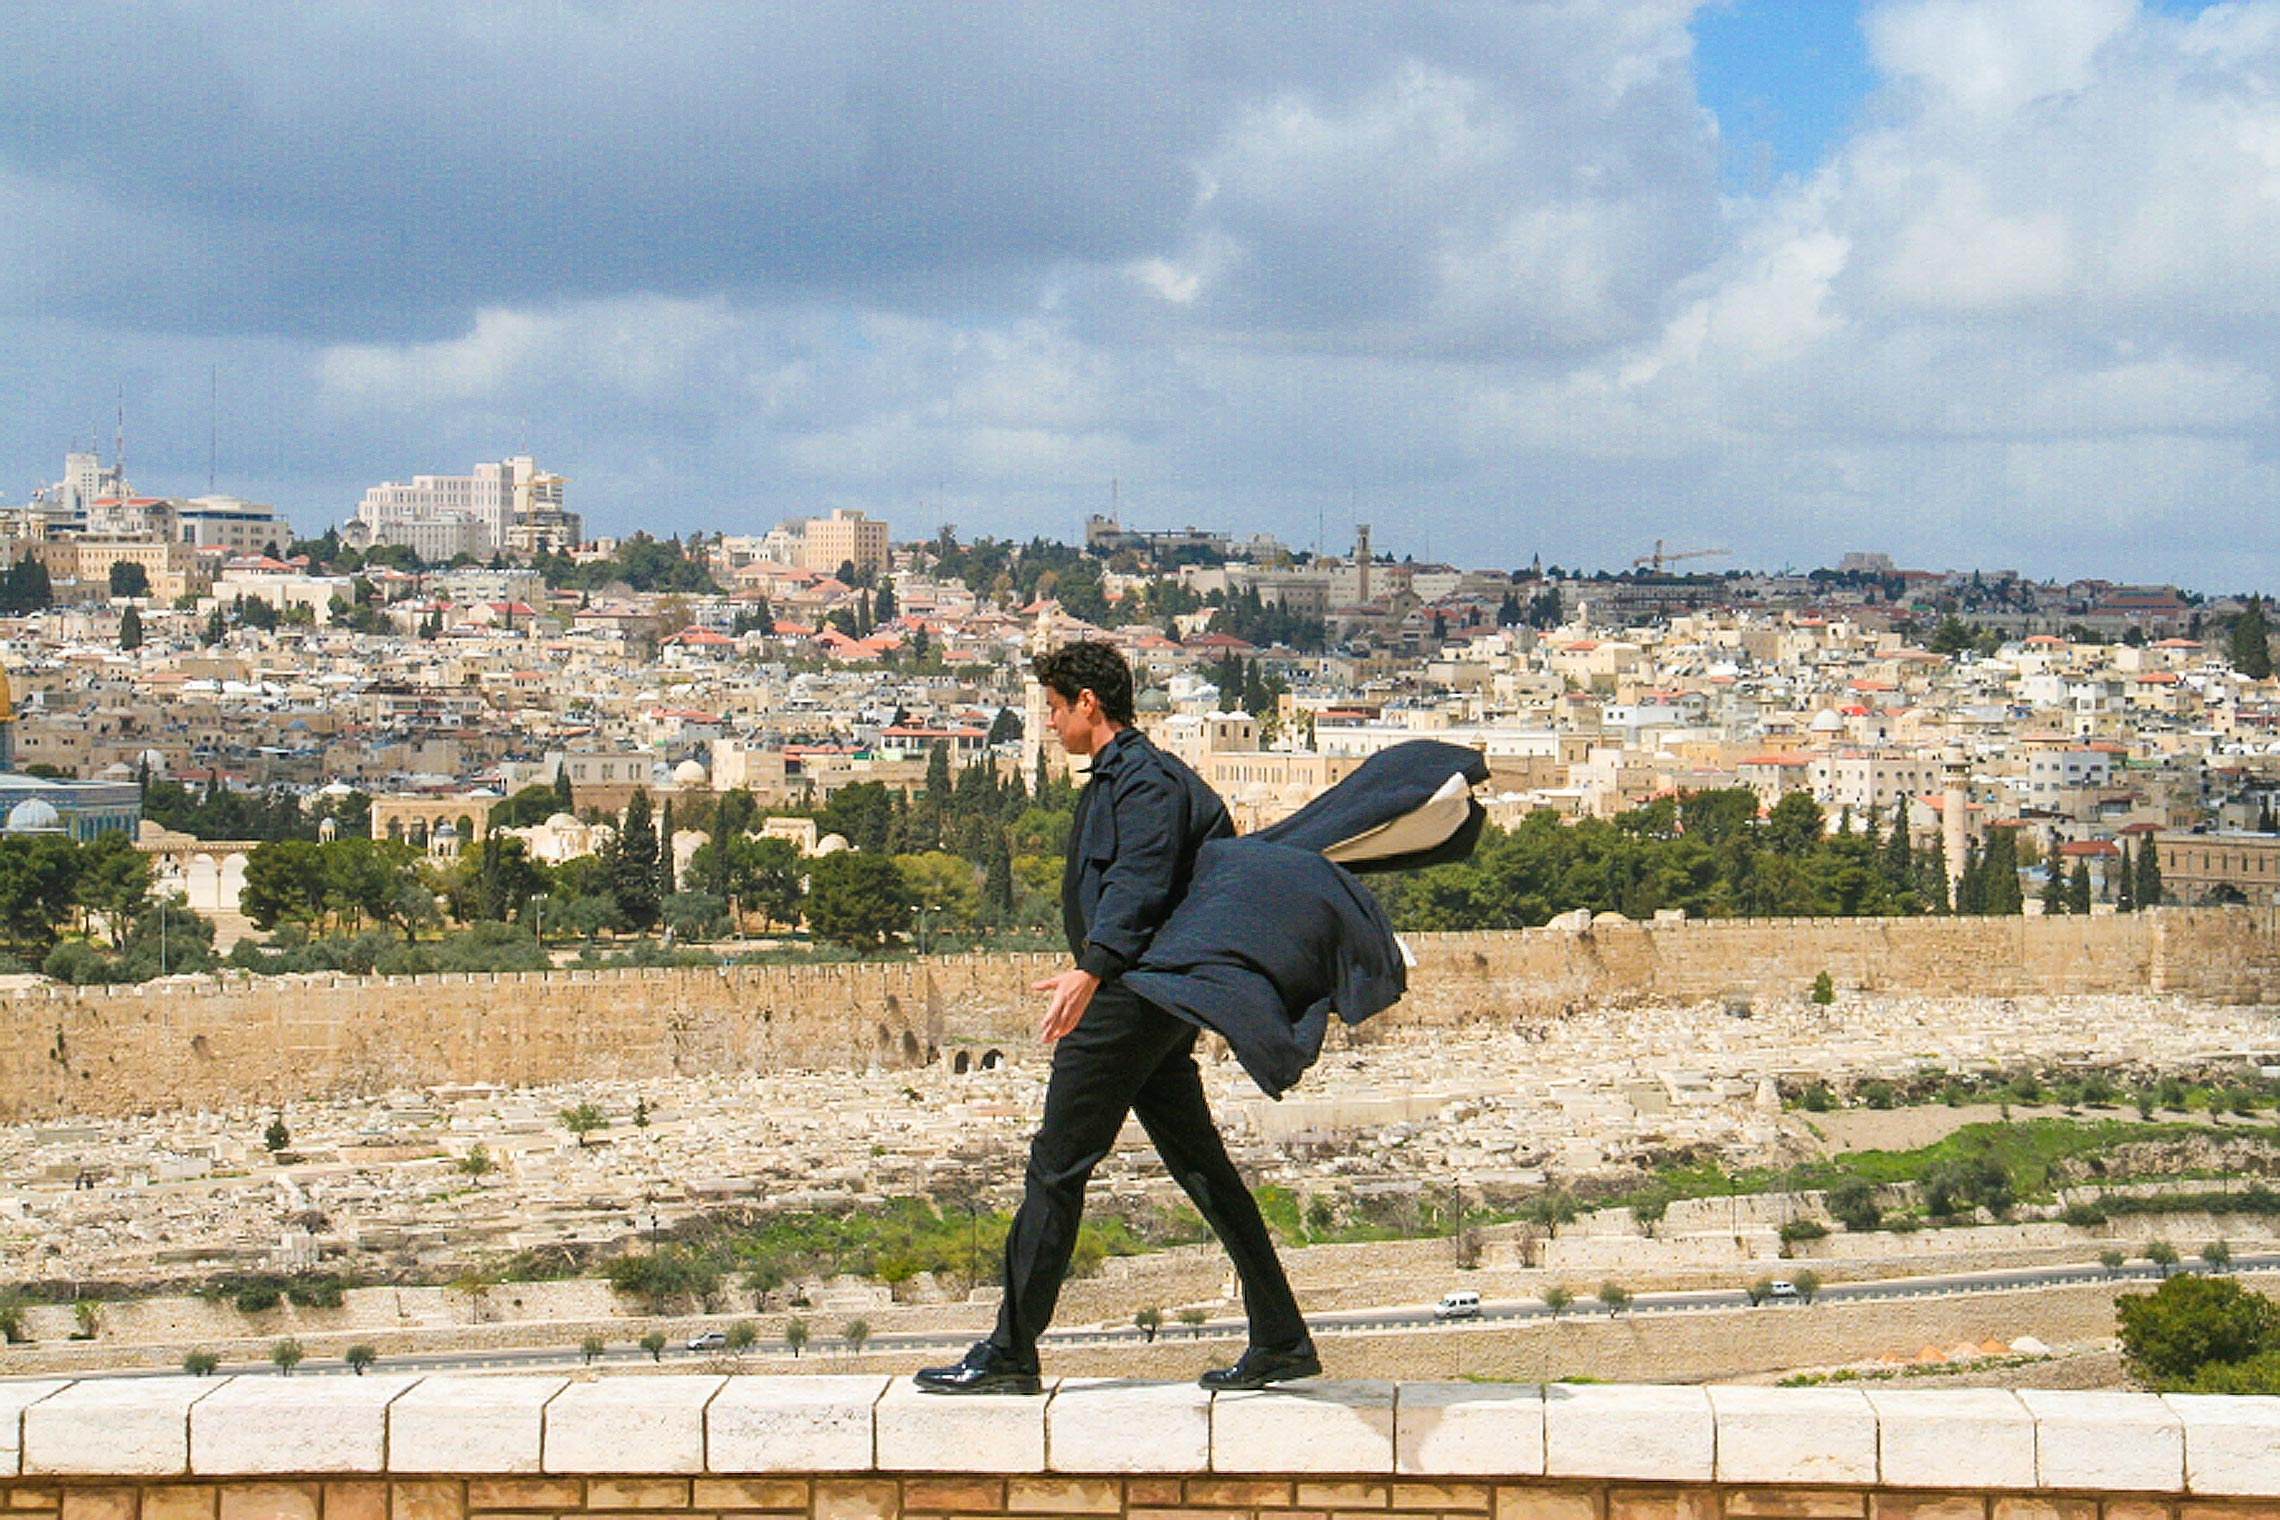 Walking during filming of <em>The Dark Prince</em> in Israel.